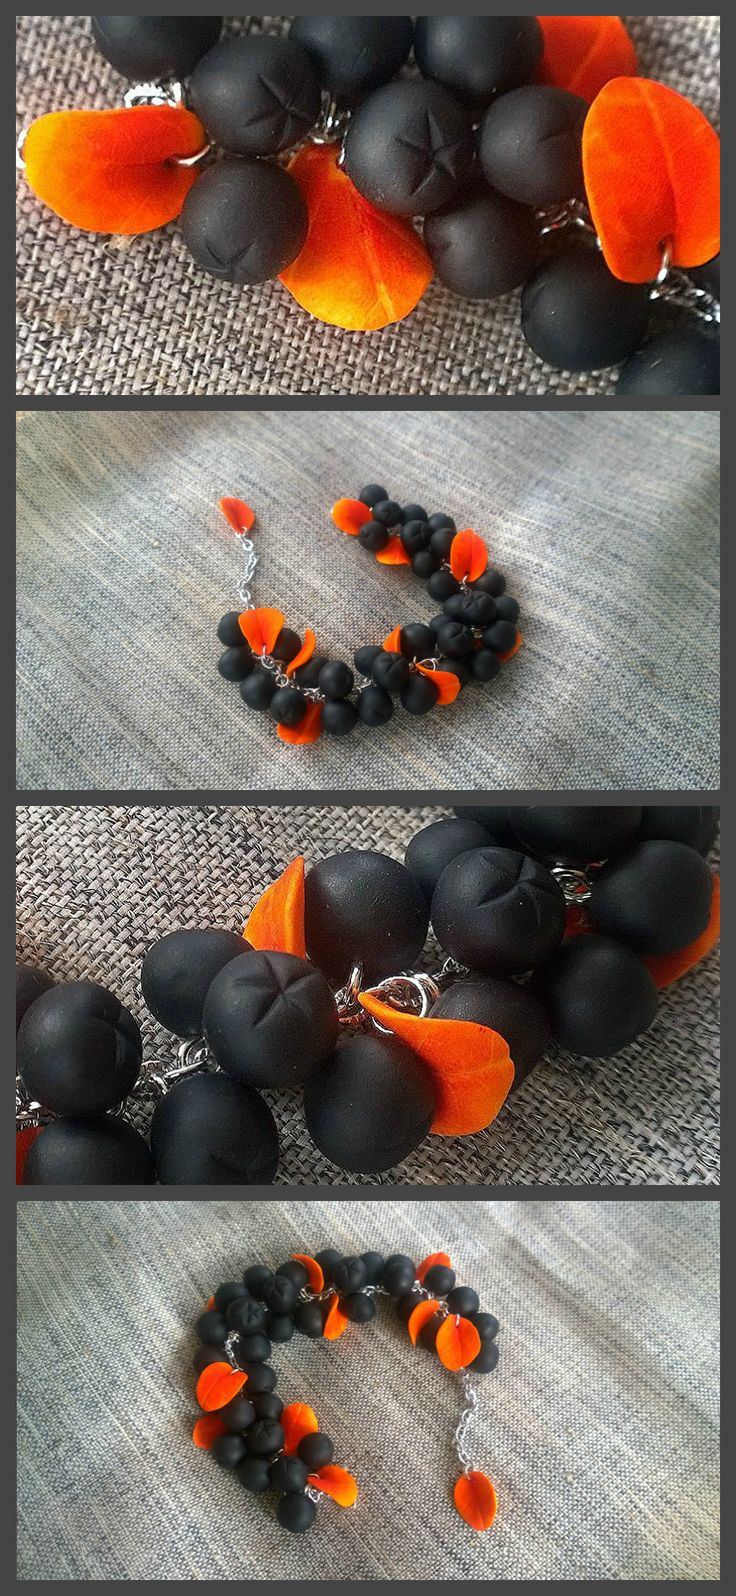 #berry #polymerclay #handmade #fimo #fimoclay #foodjewelry #craft #berries #арония #рябина #etsy